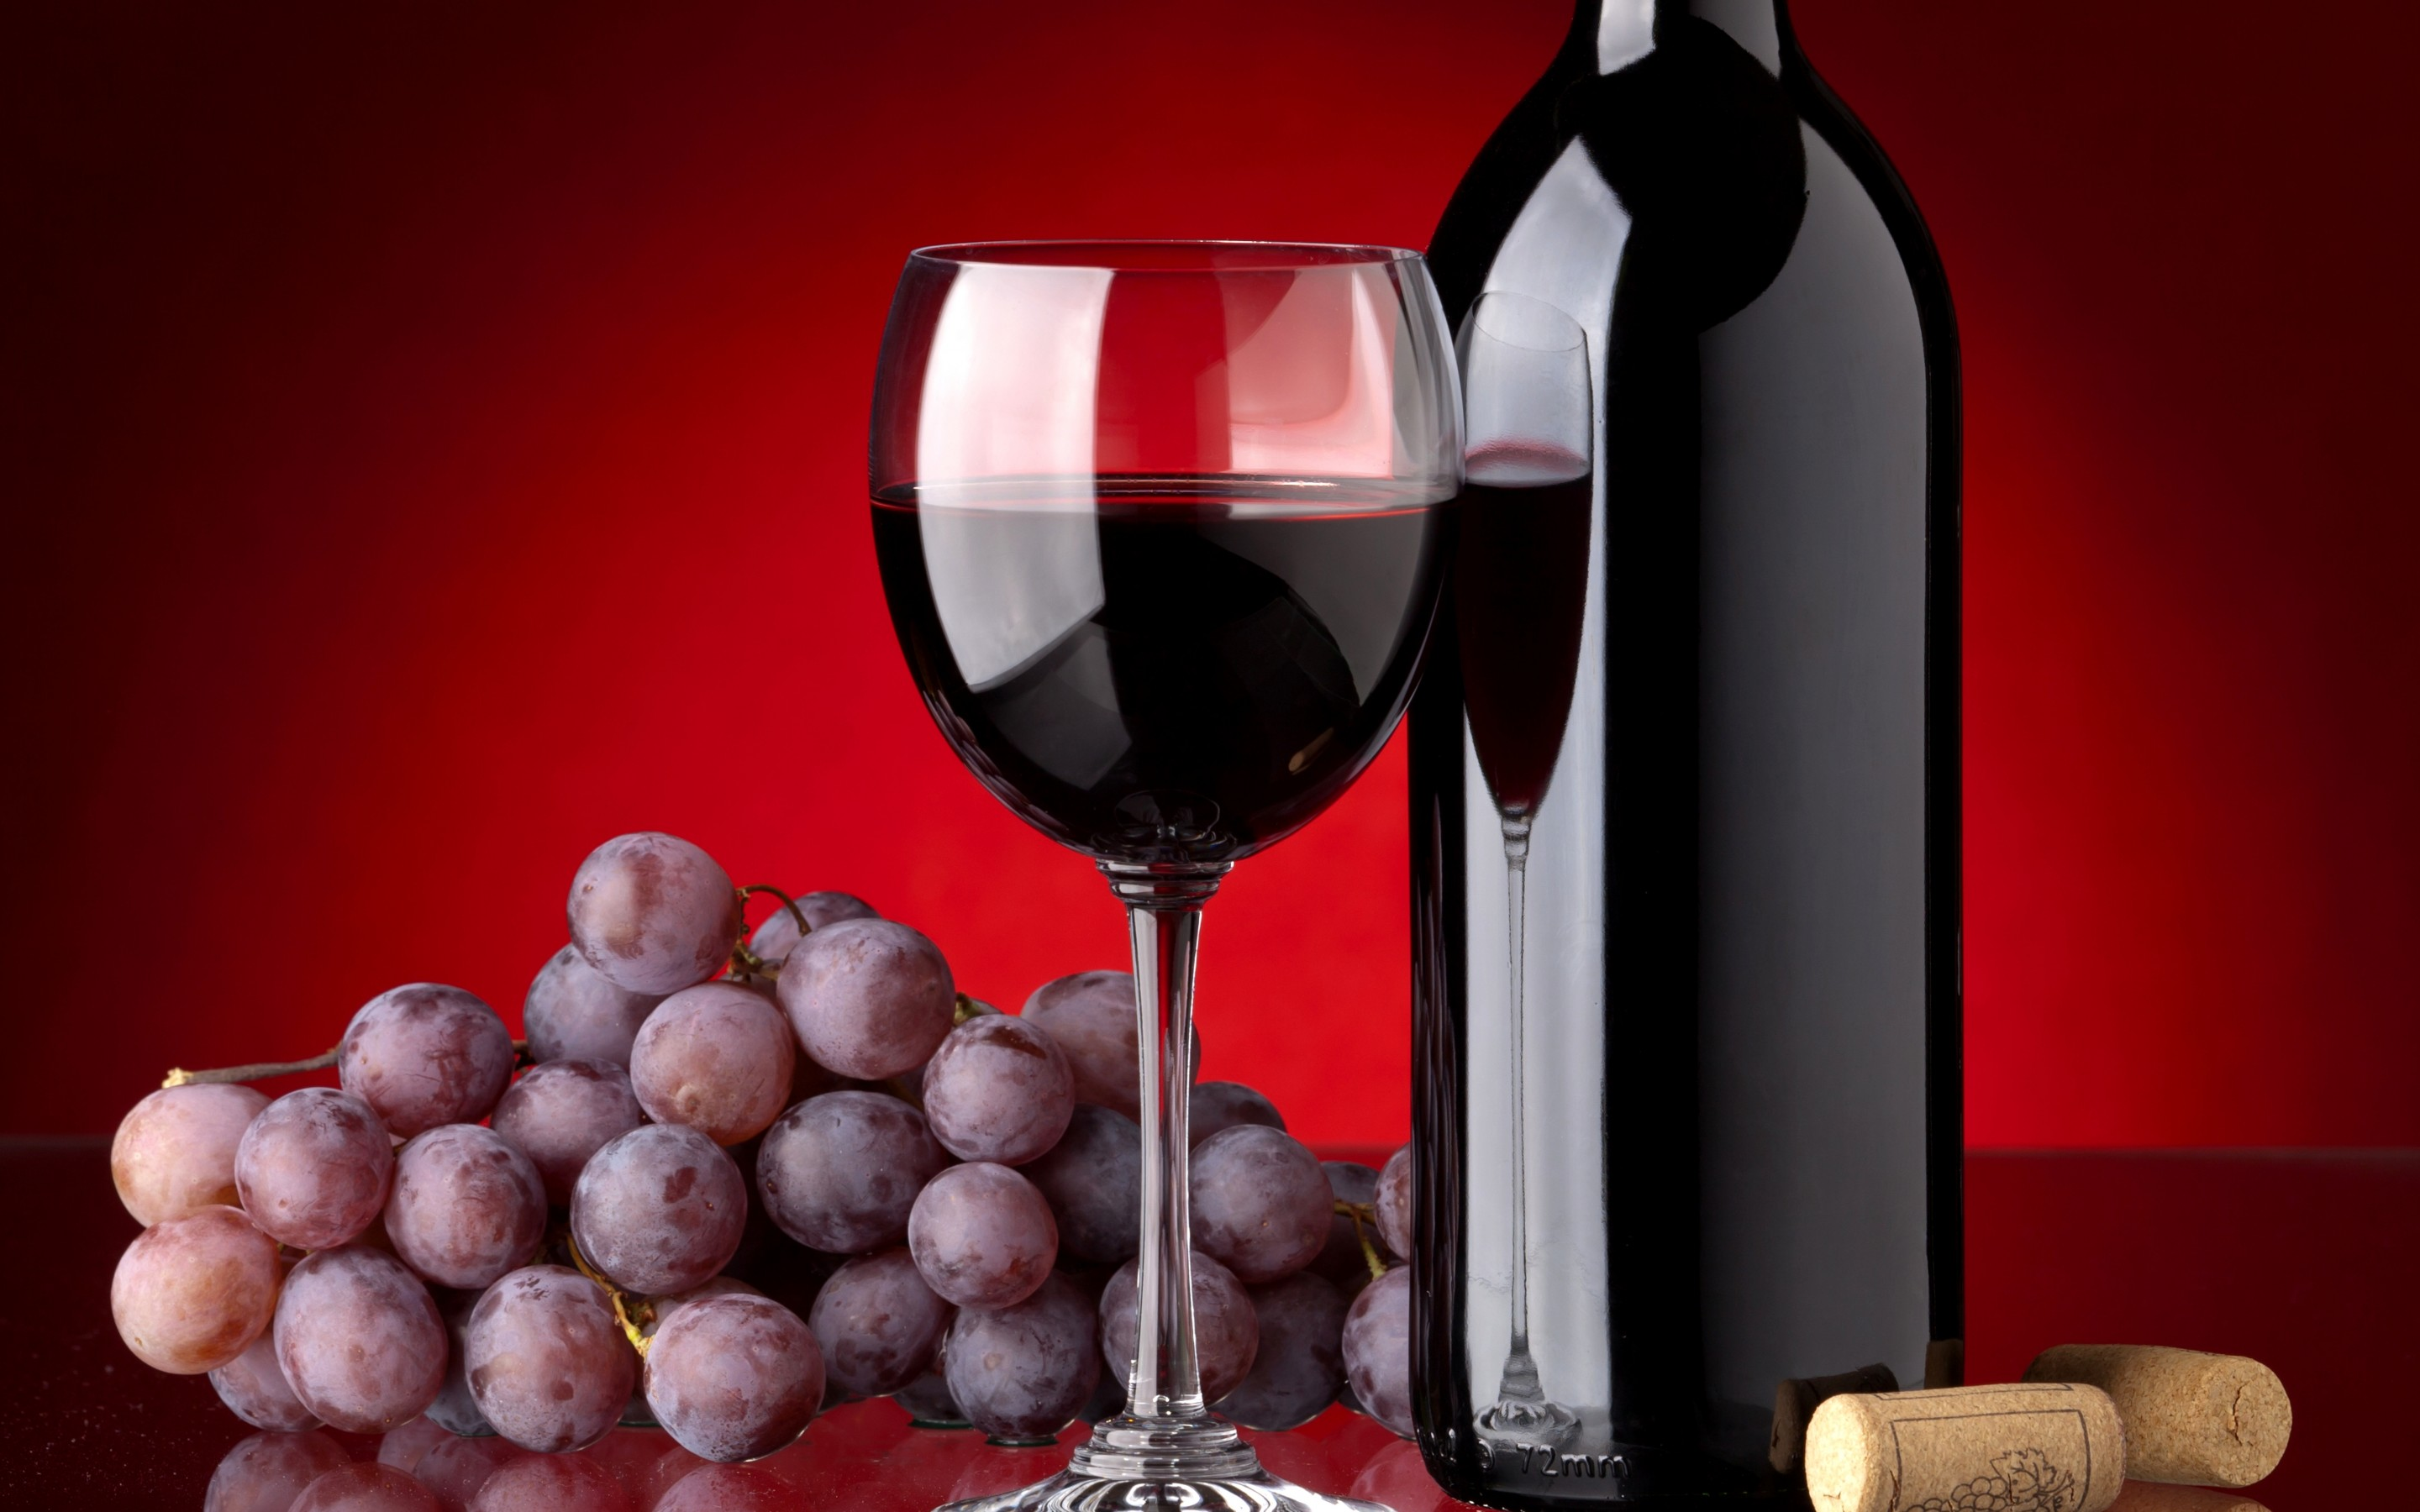 256 Wine Hd Wallpapers Background Images Wallpaper Abyss